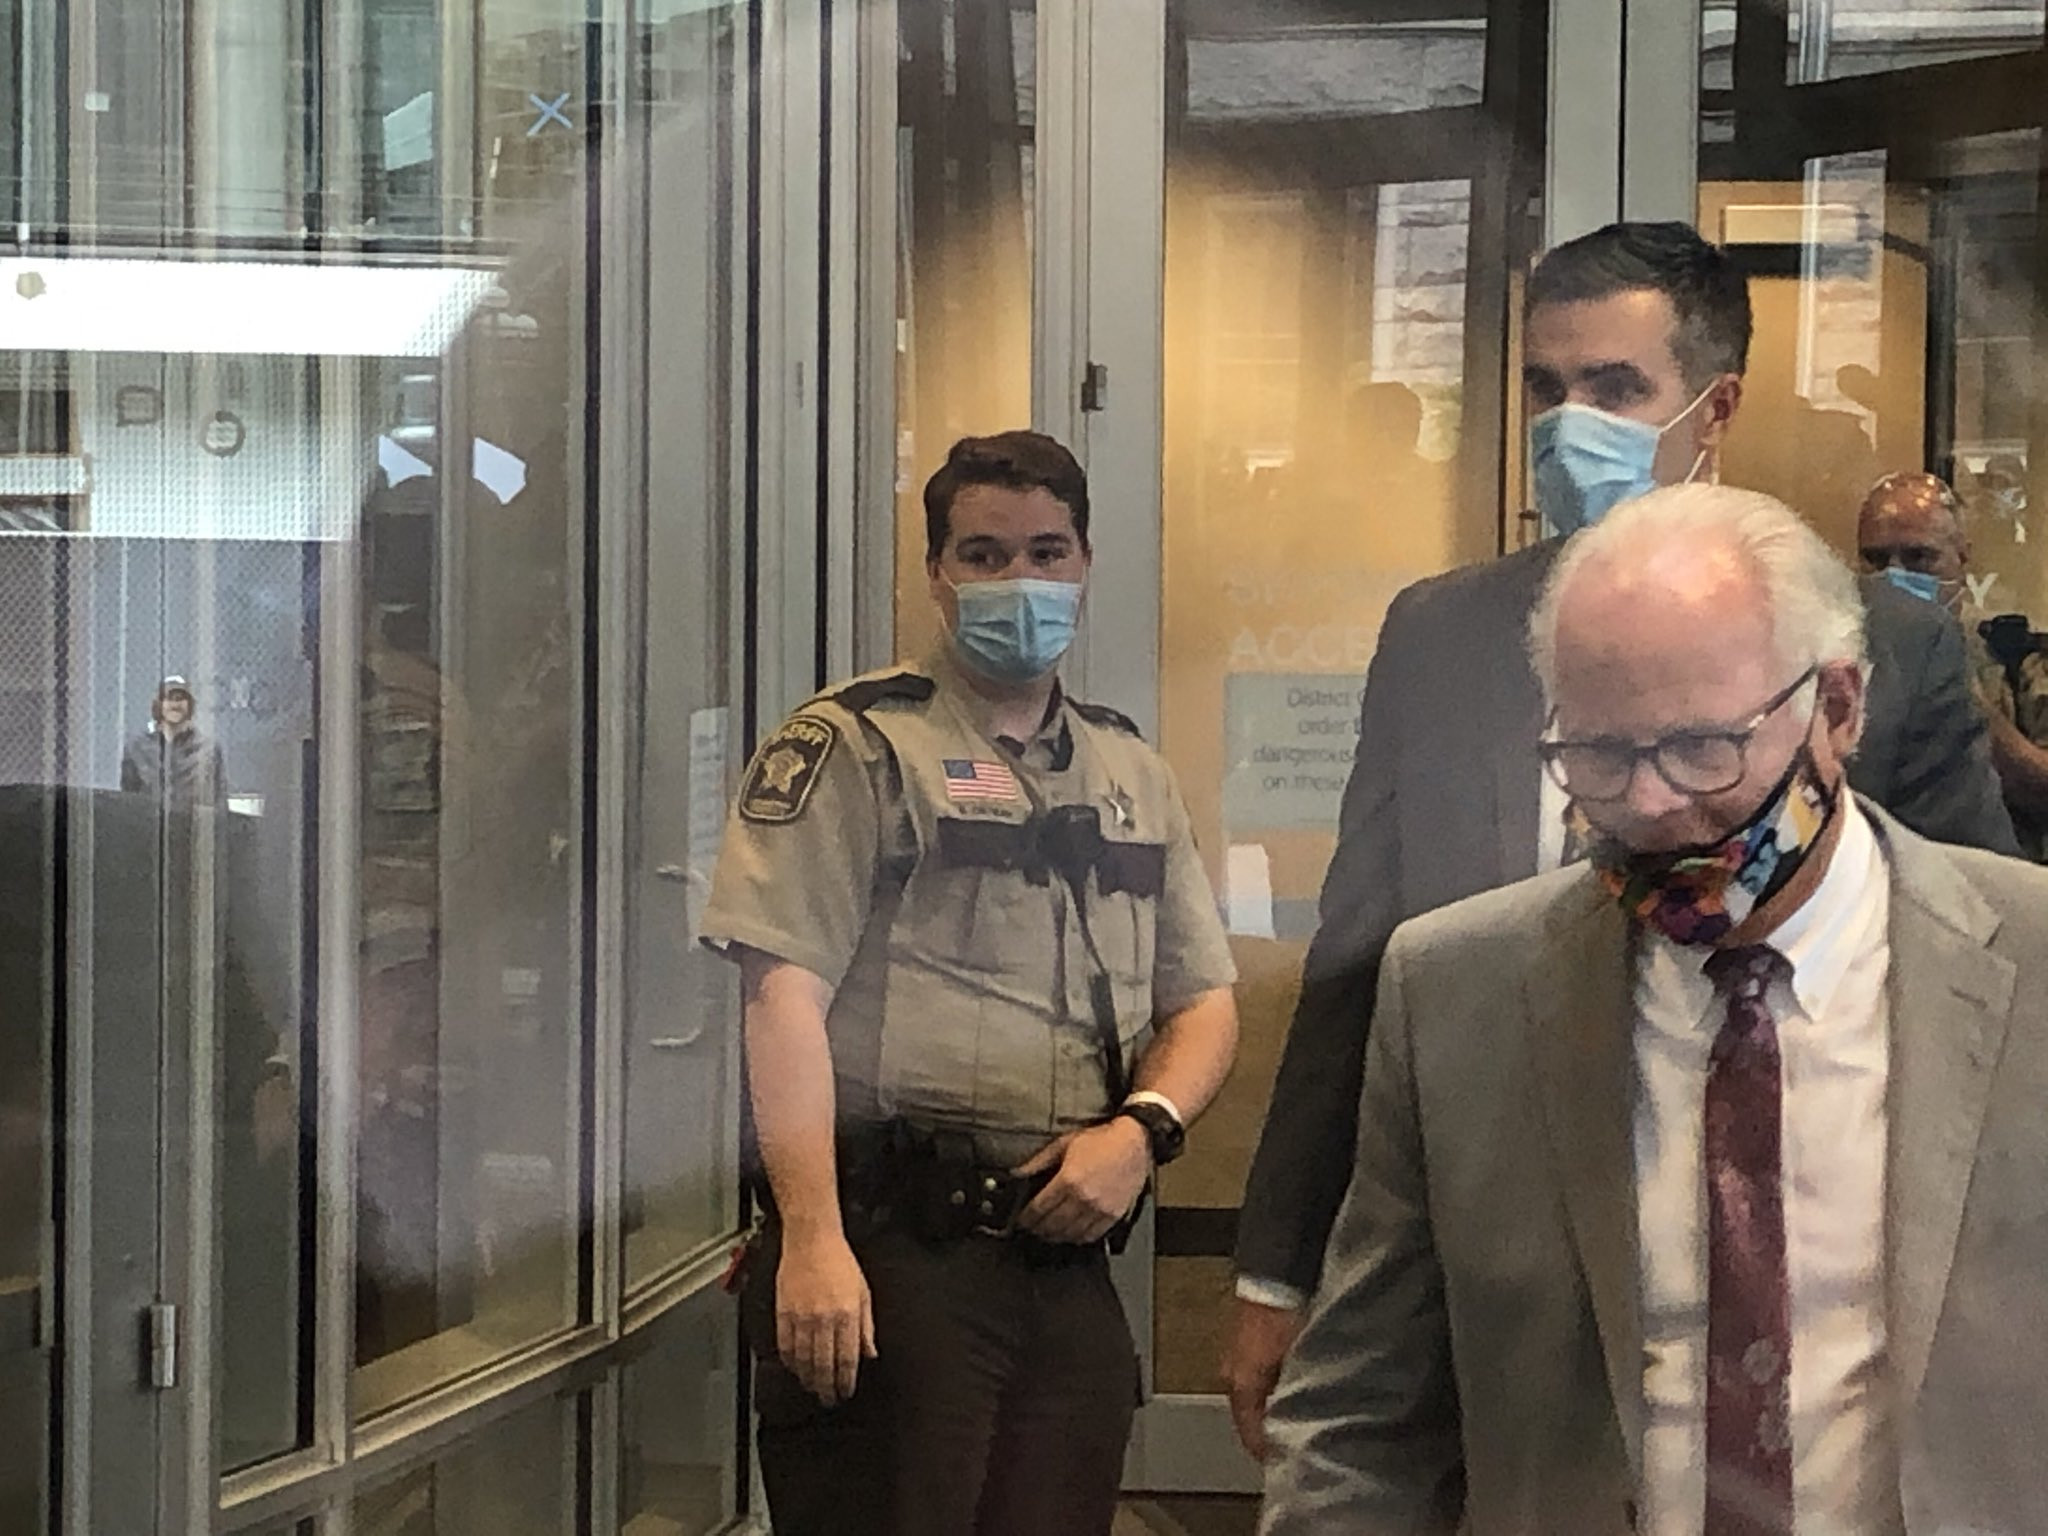 Four ex-Minneapolis police officers charged in George Floyd's killing appear in court (Photos)